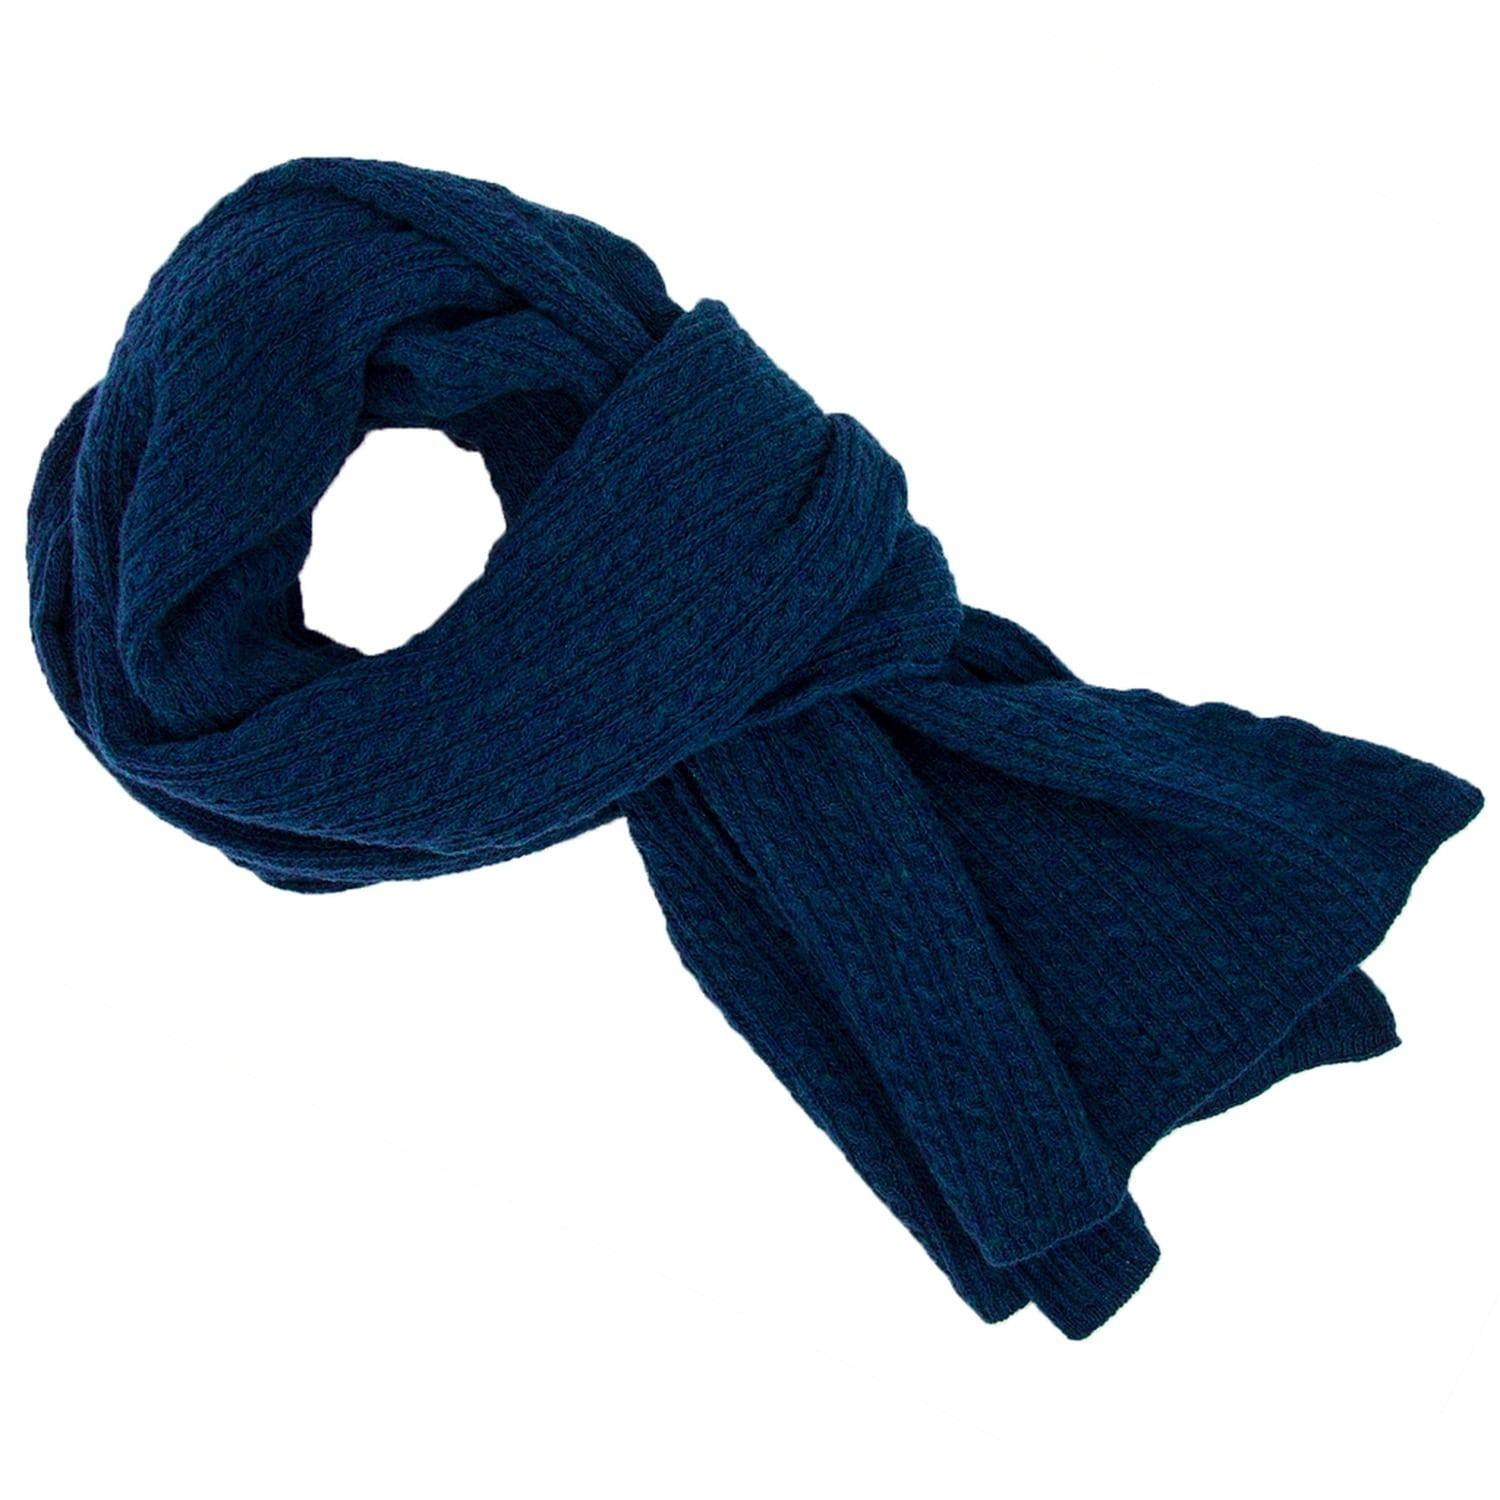 60d2240b6 40 Colori - Blue Petrol Small Braided Wool & Cashmere Scarf for Men - Lyst